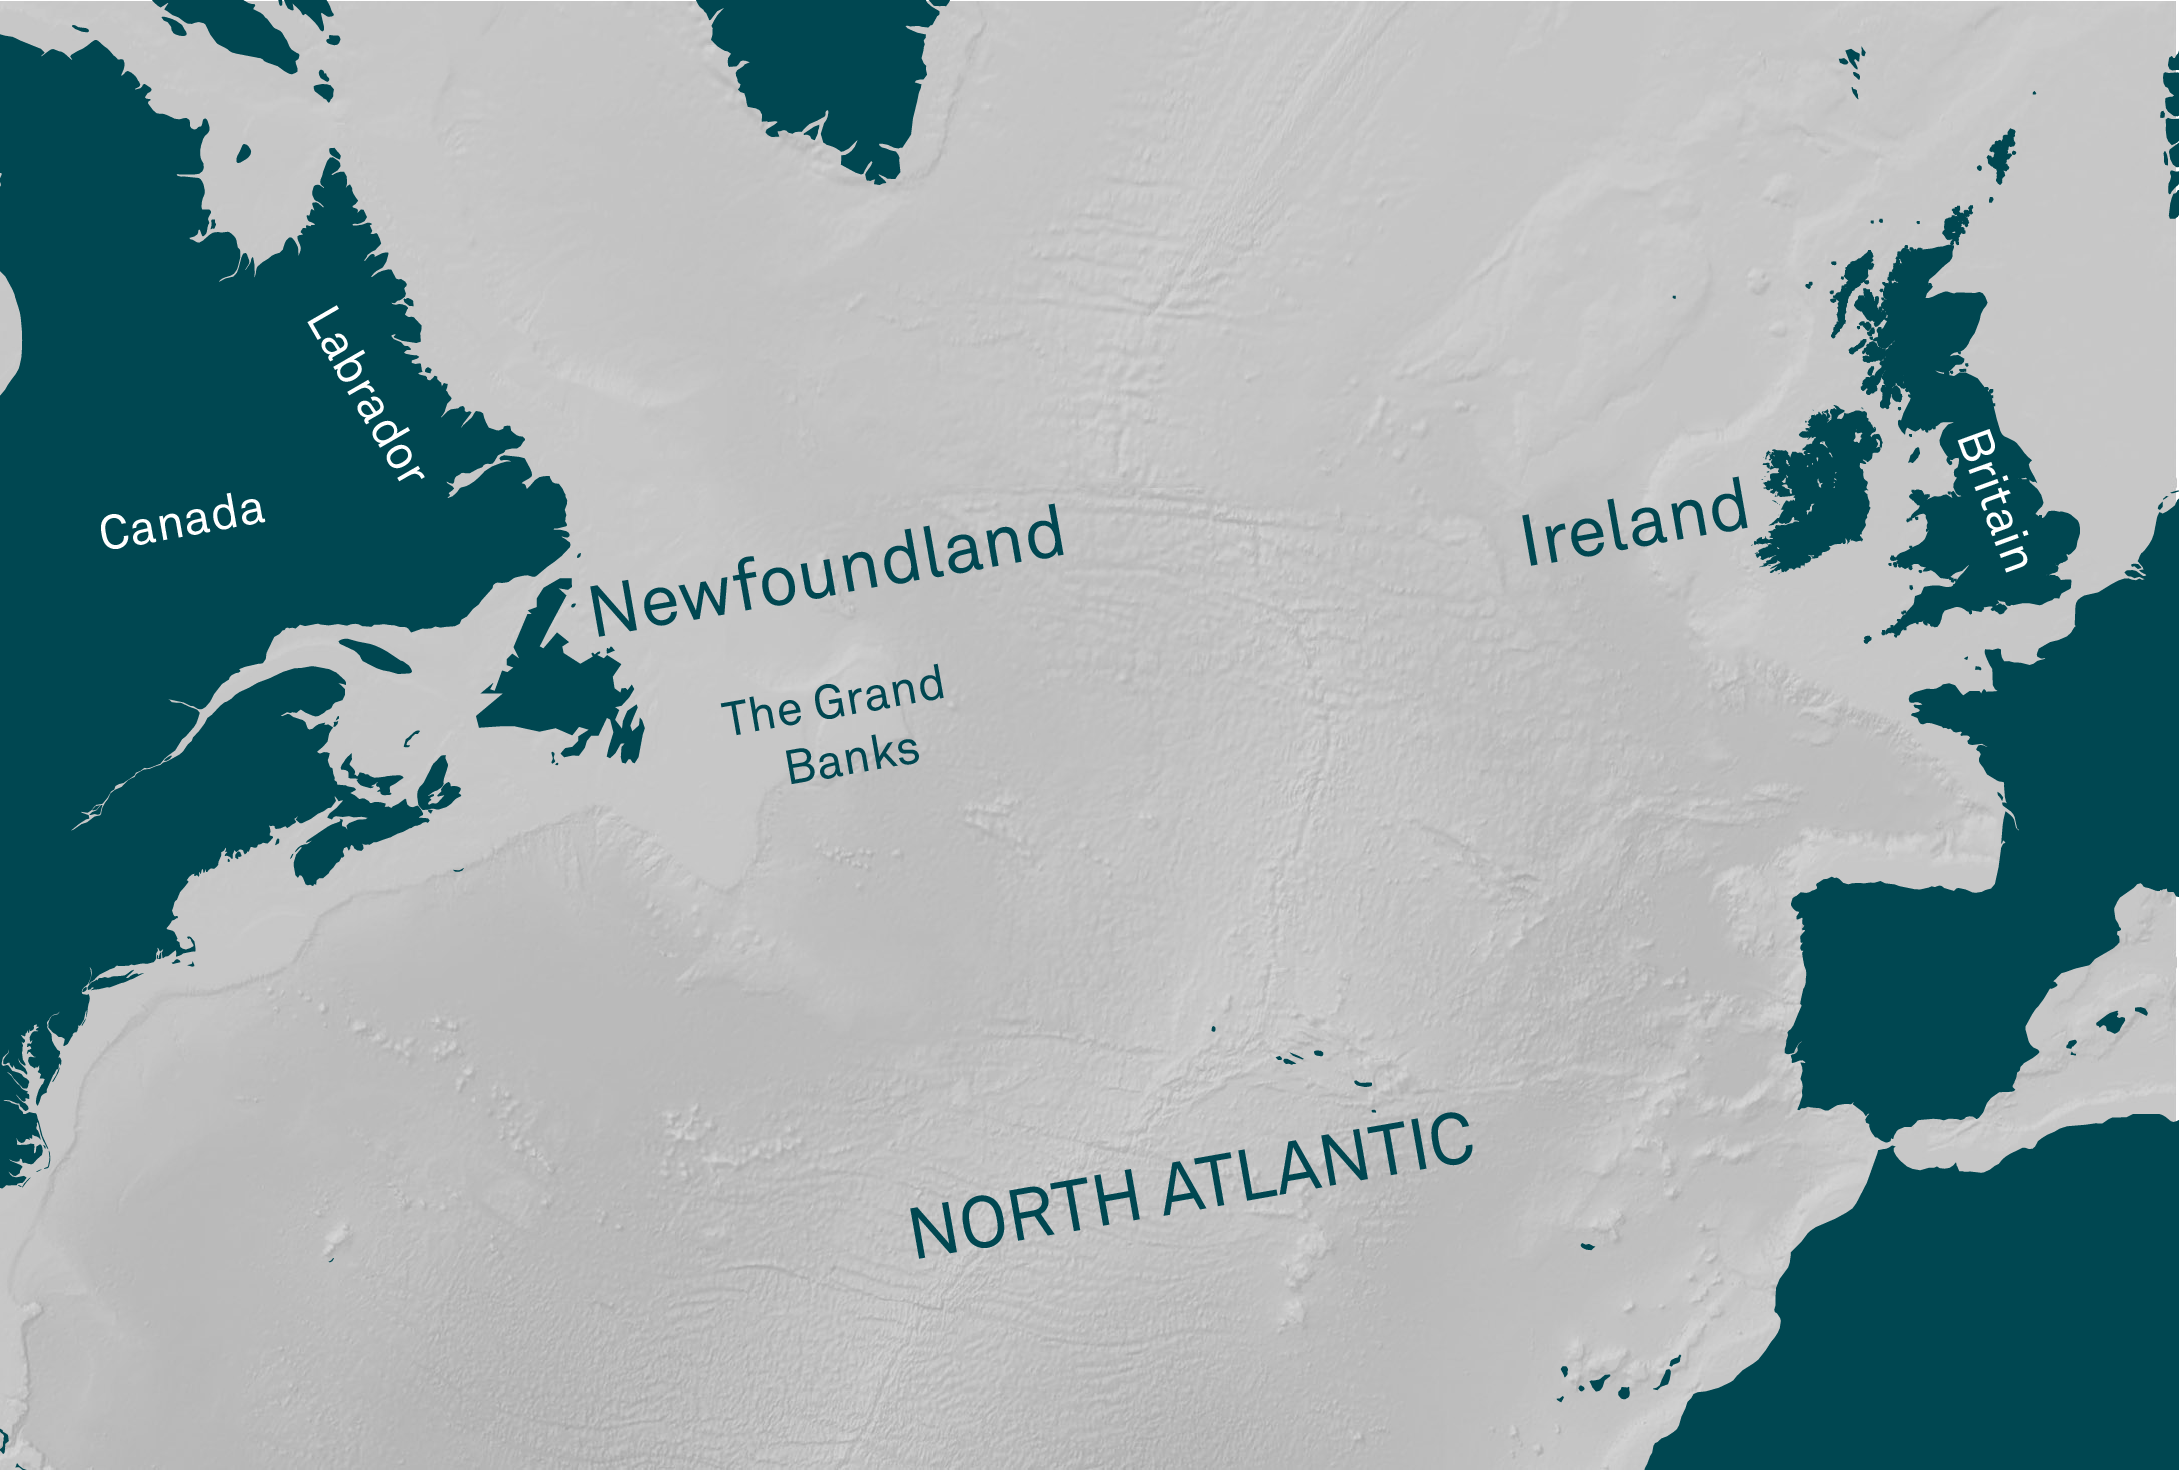 Map of Newfoundland and Ireland by Finnian Ó Cionnaith.